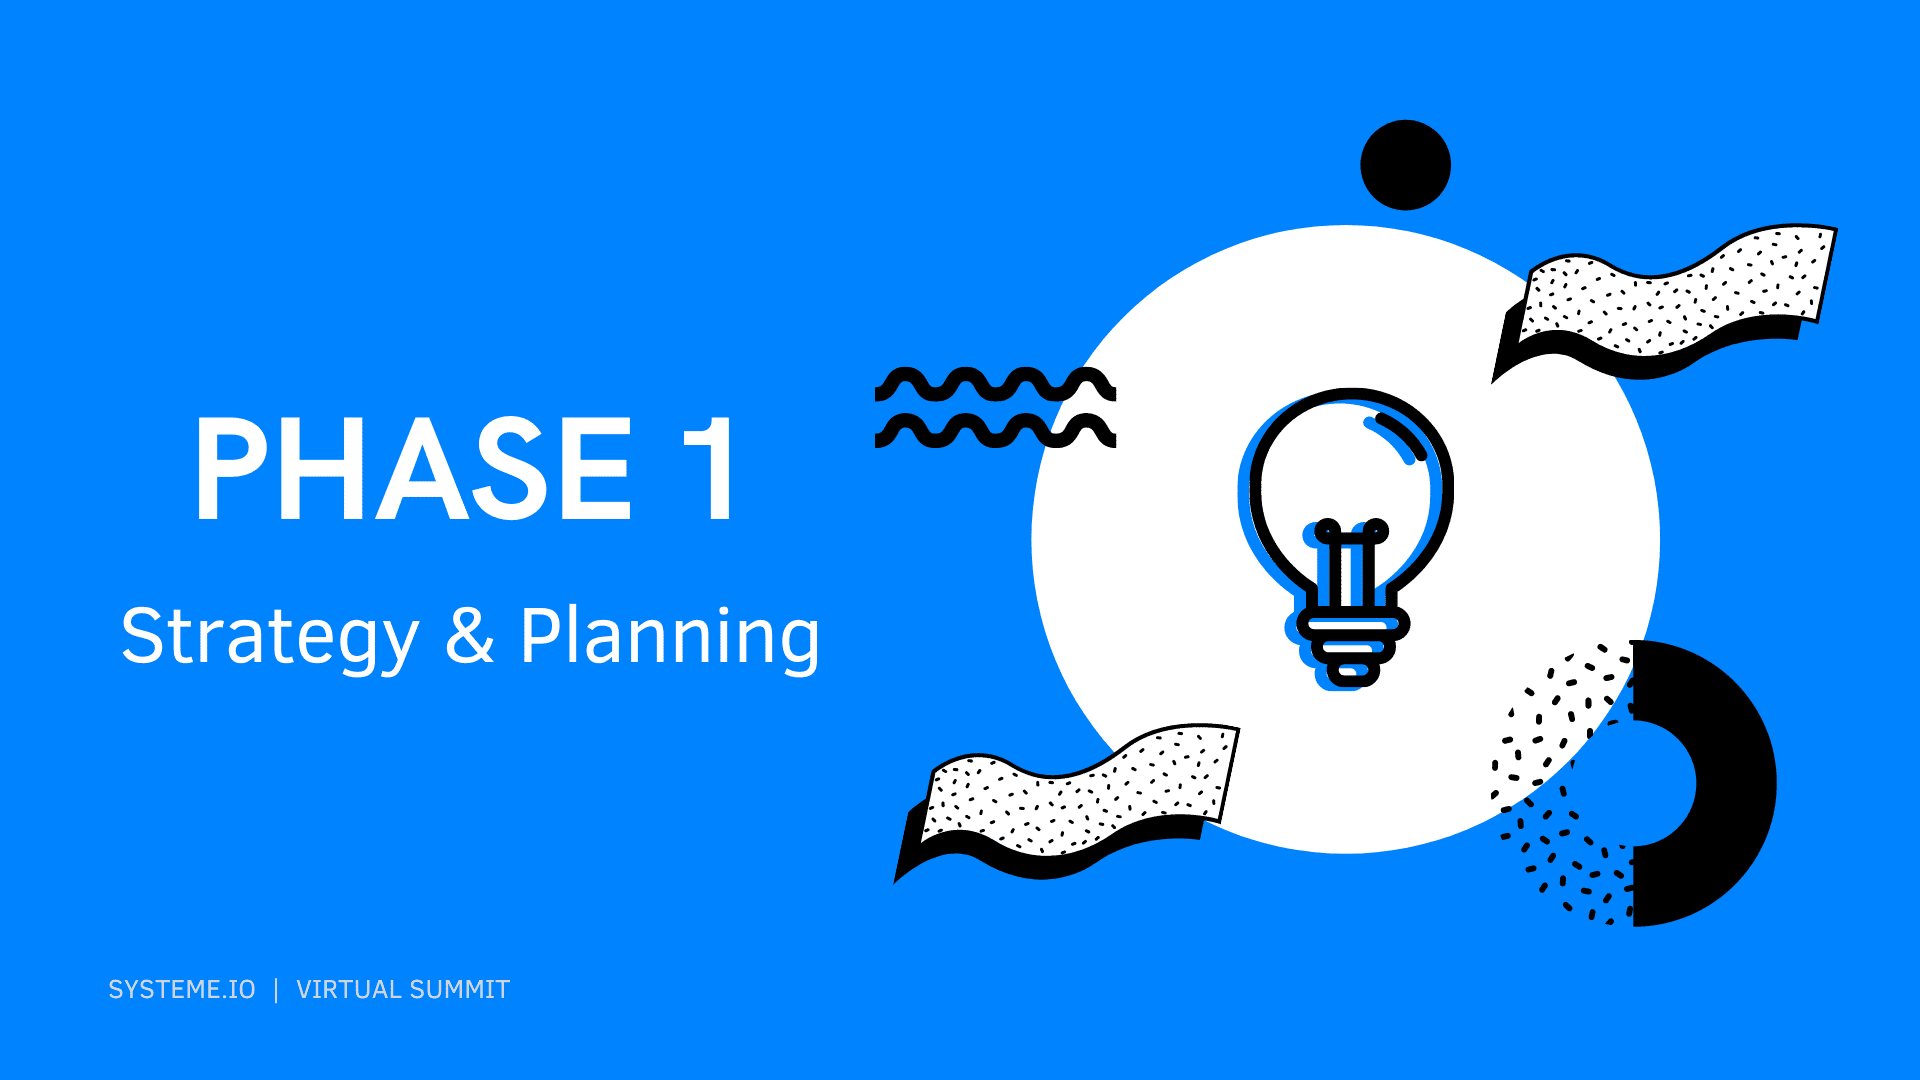 Phase 1 — Strategy and Planning